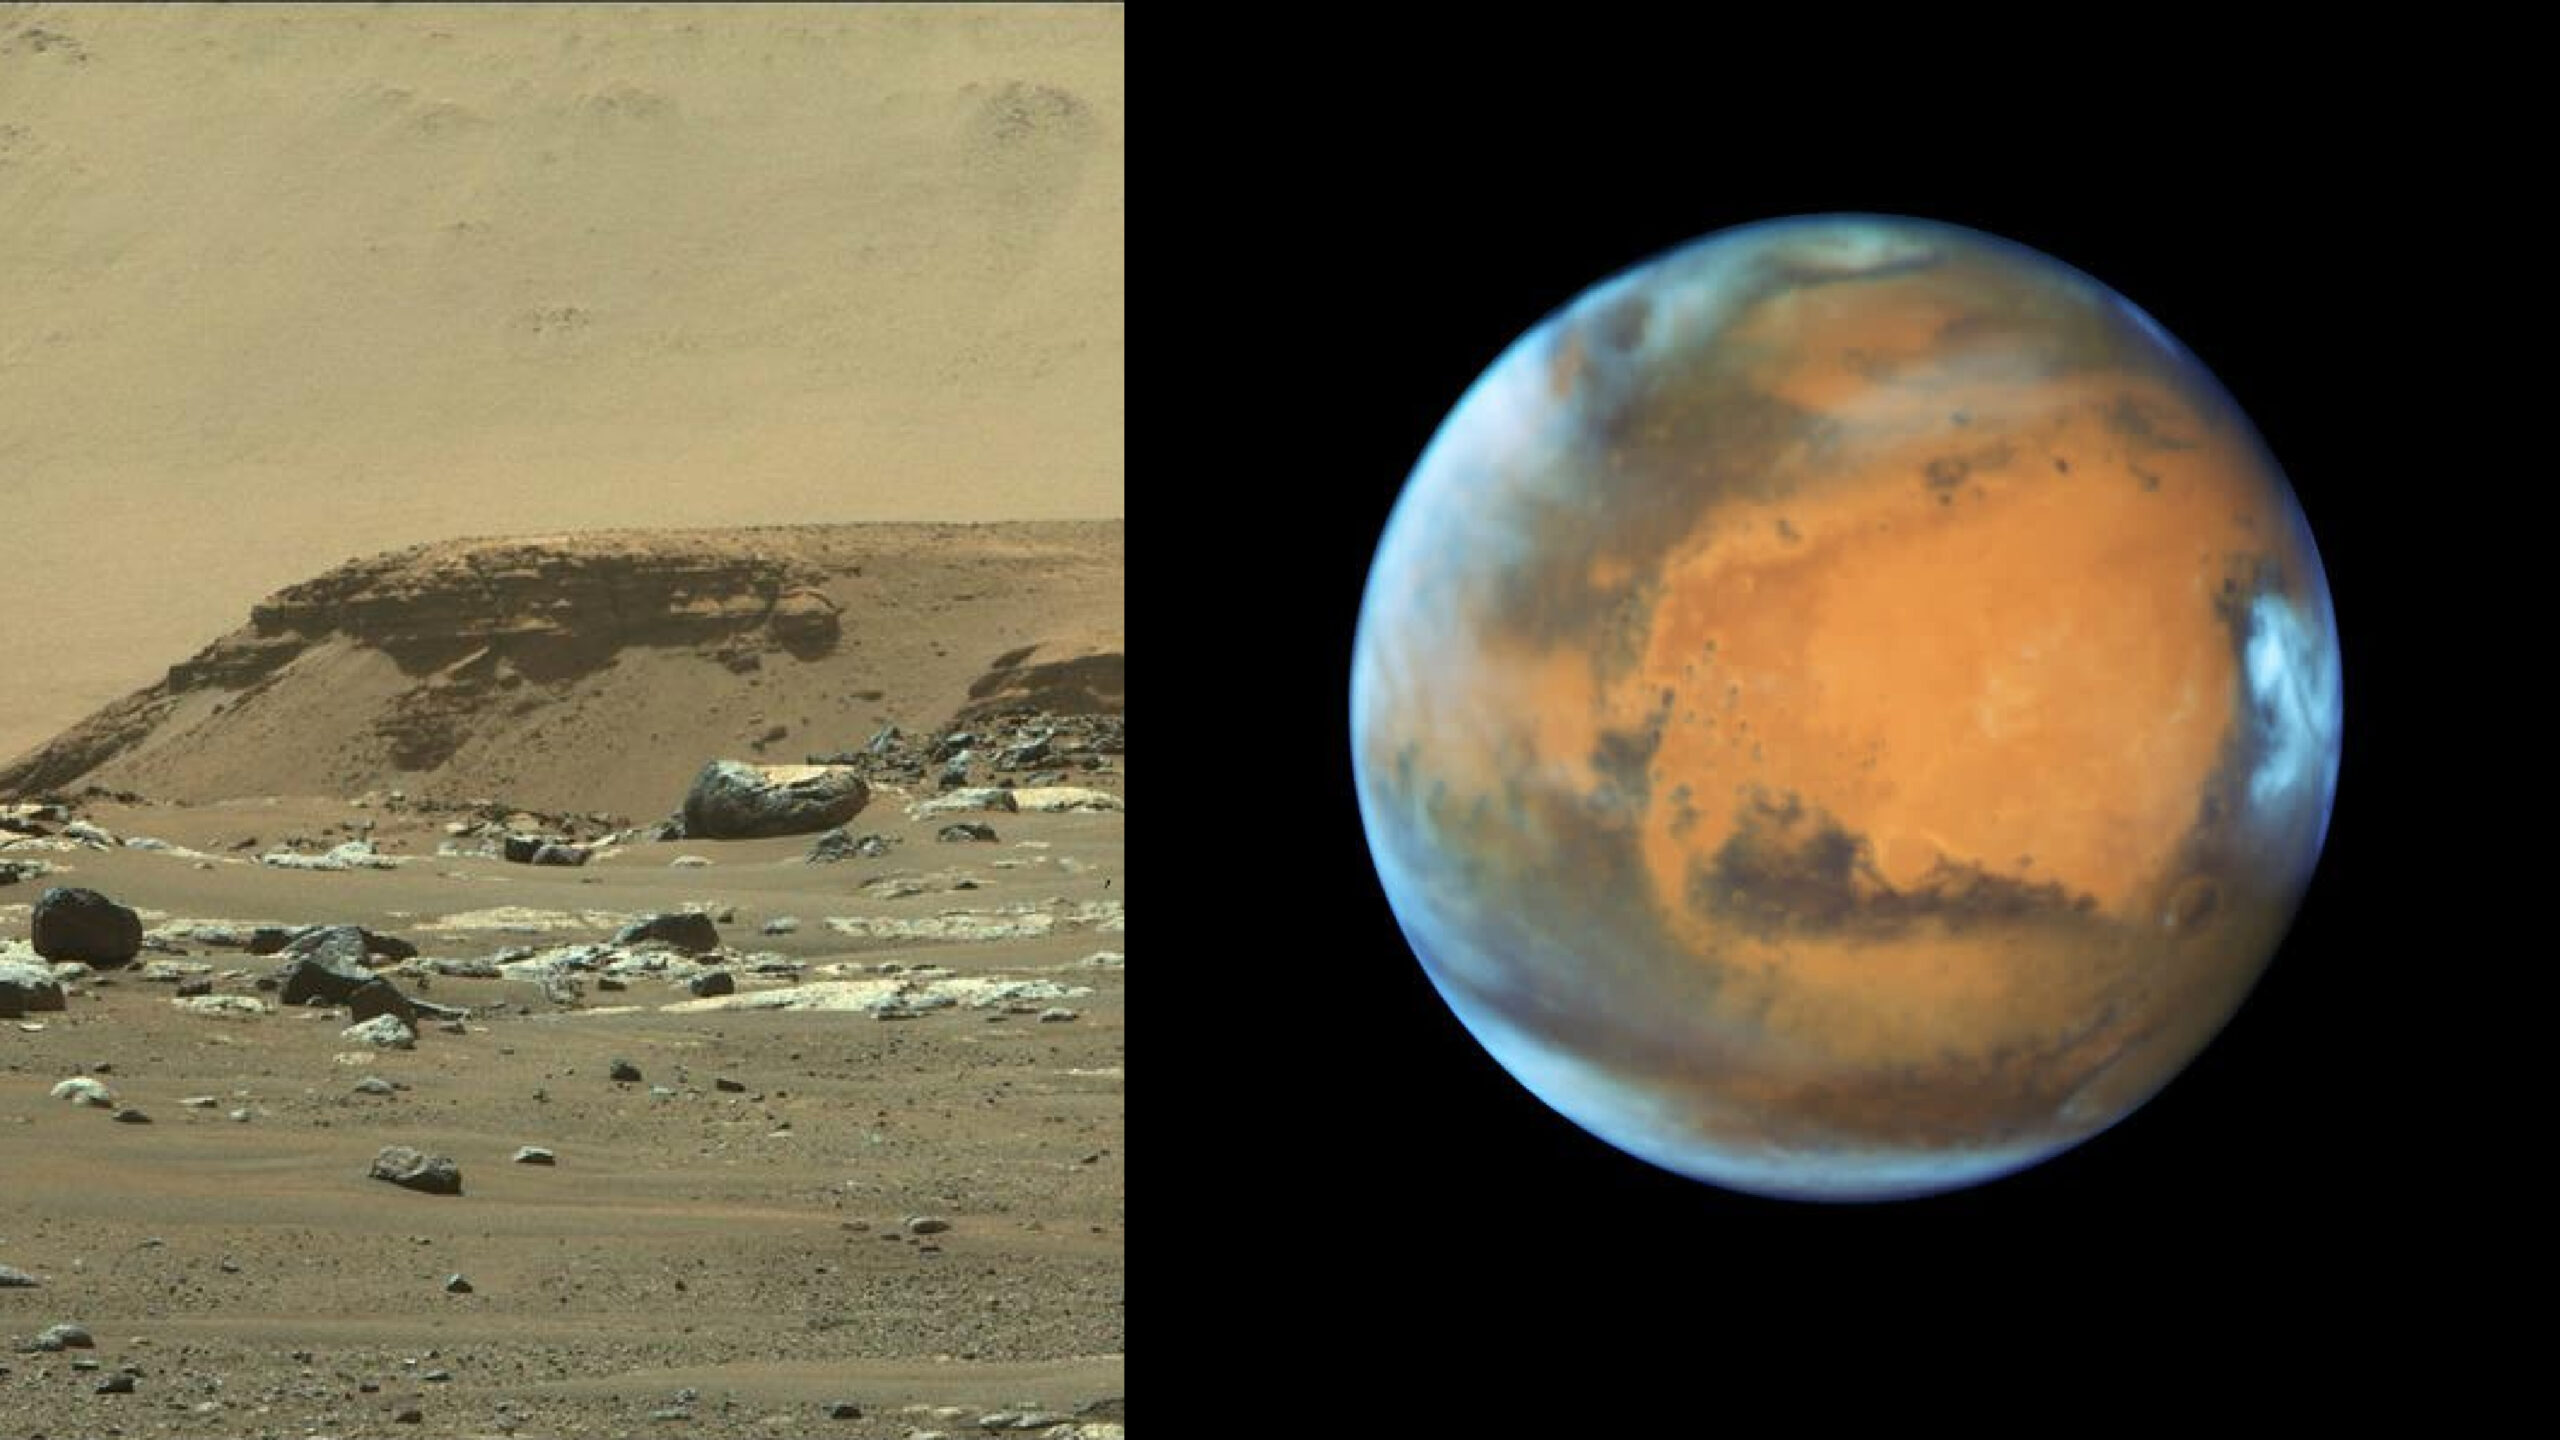 Missing water may be buried under Mars surface: Study